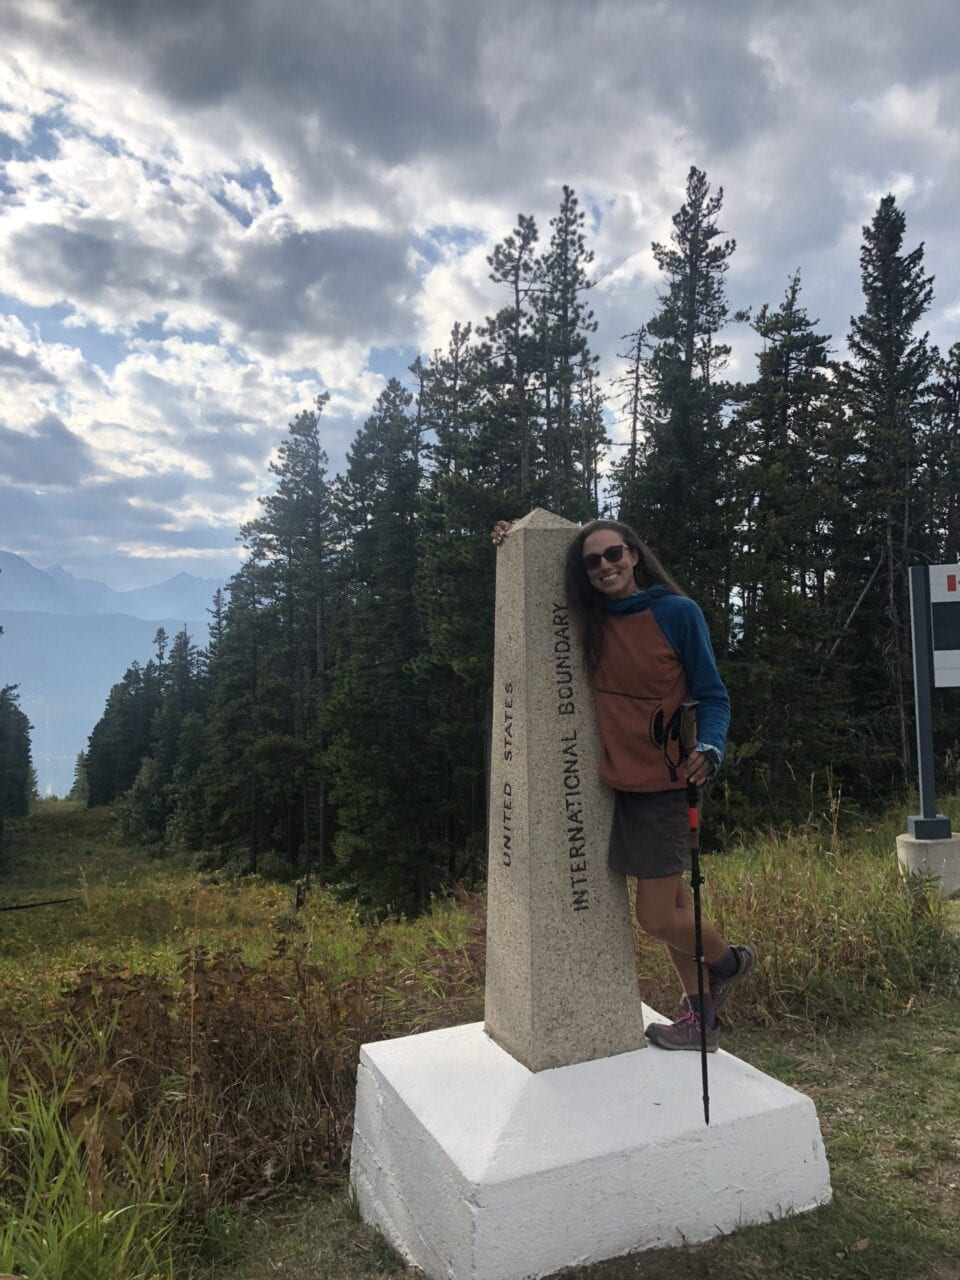 A woman standing on the CDT terminus.